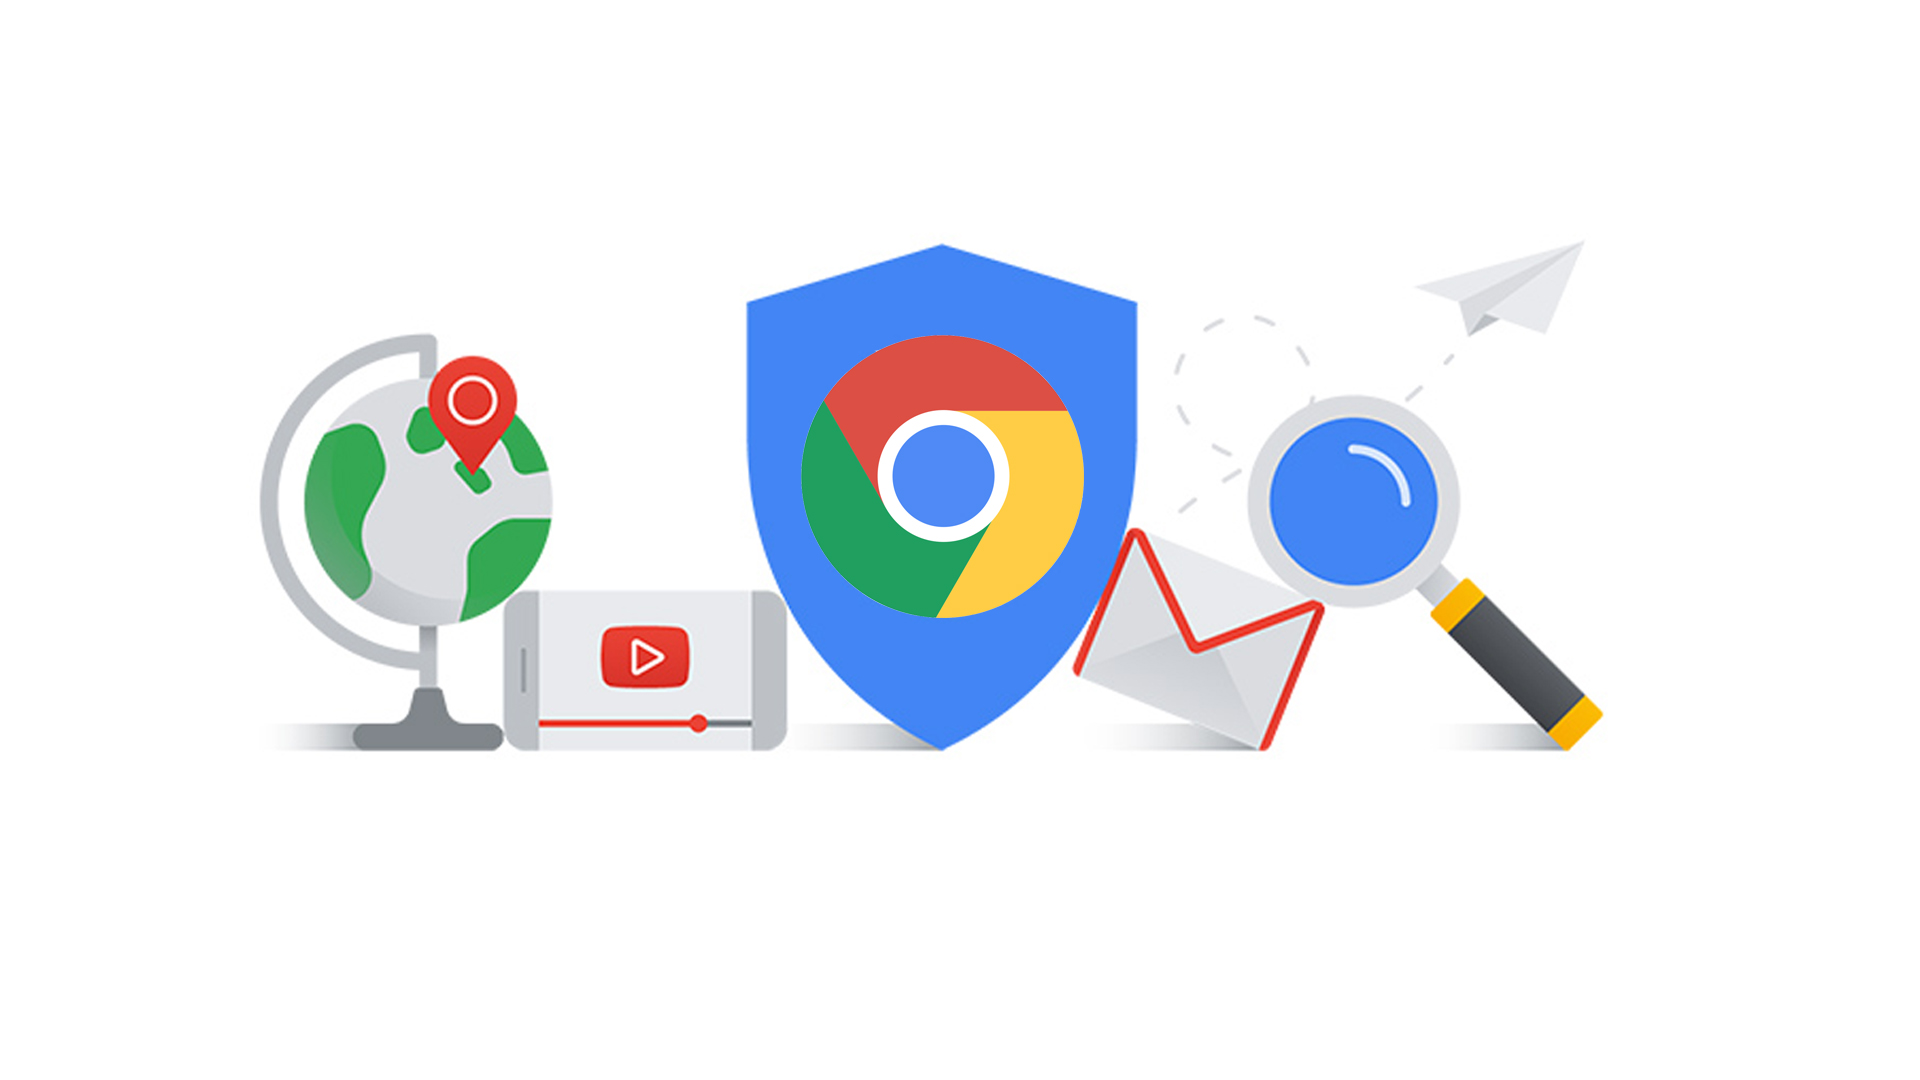 Google Chrome will soon block JavaScript redirects when clicking web links